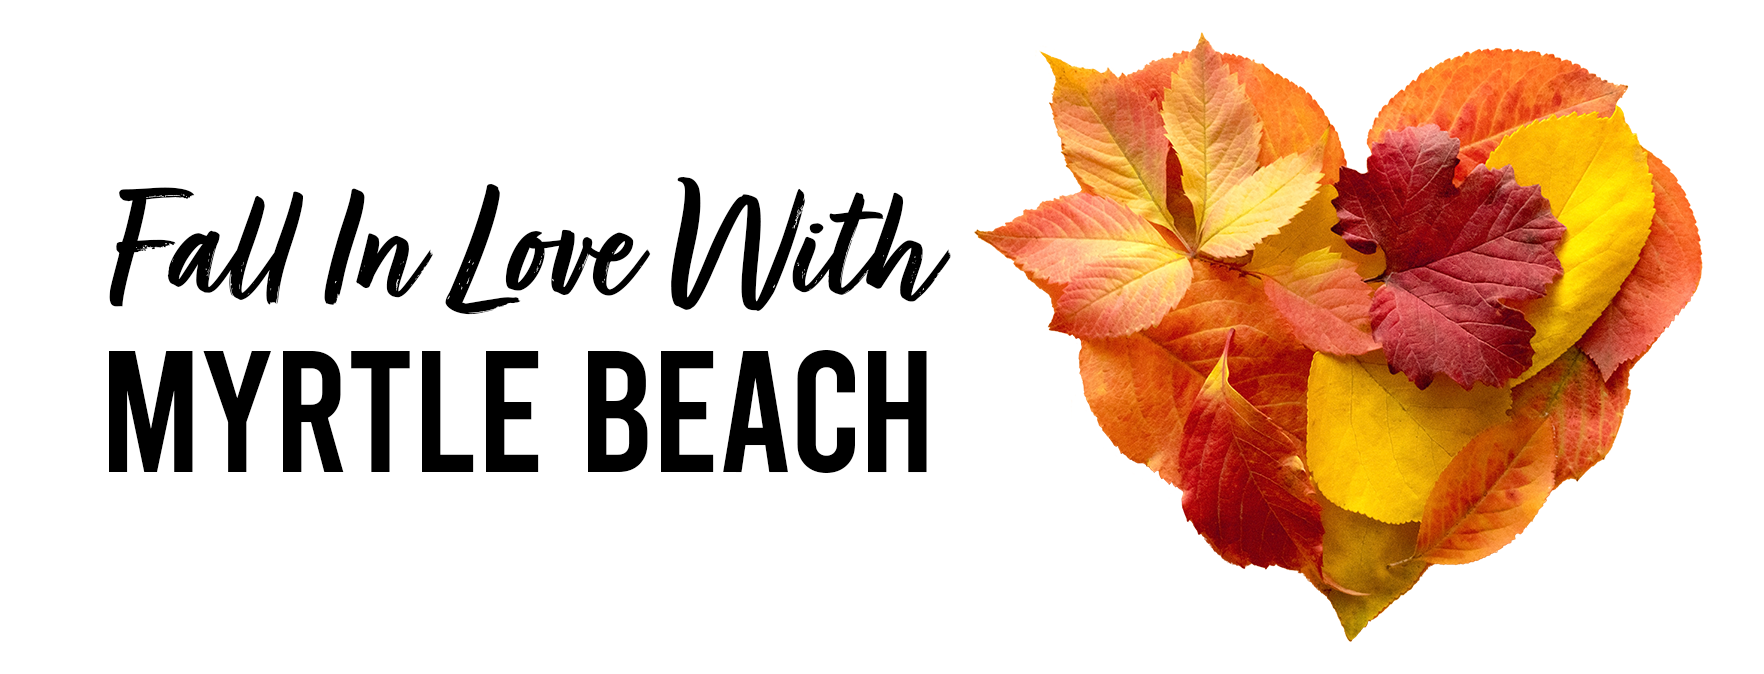 Fall In Love With Myrtle Beach